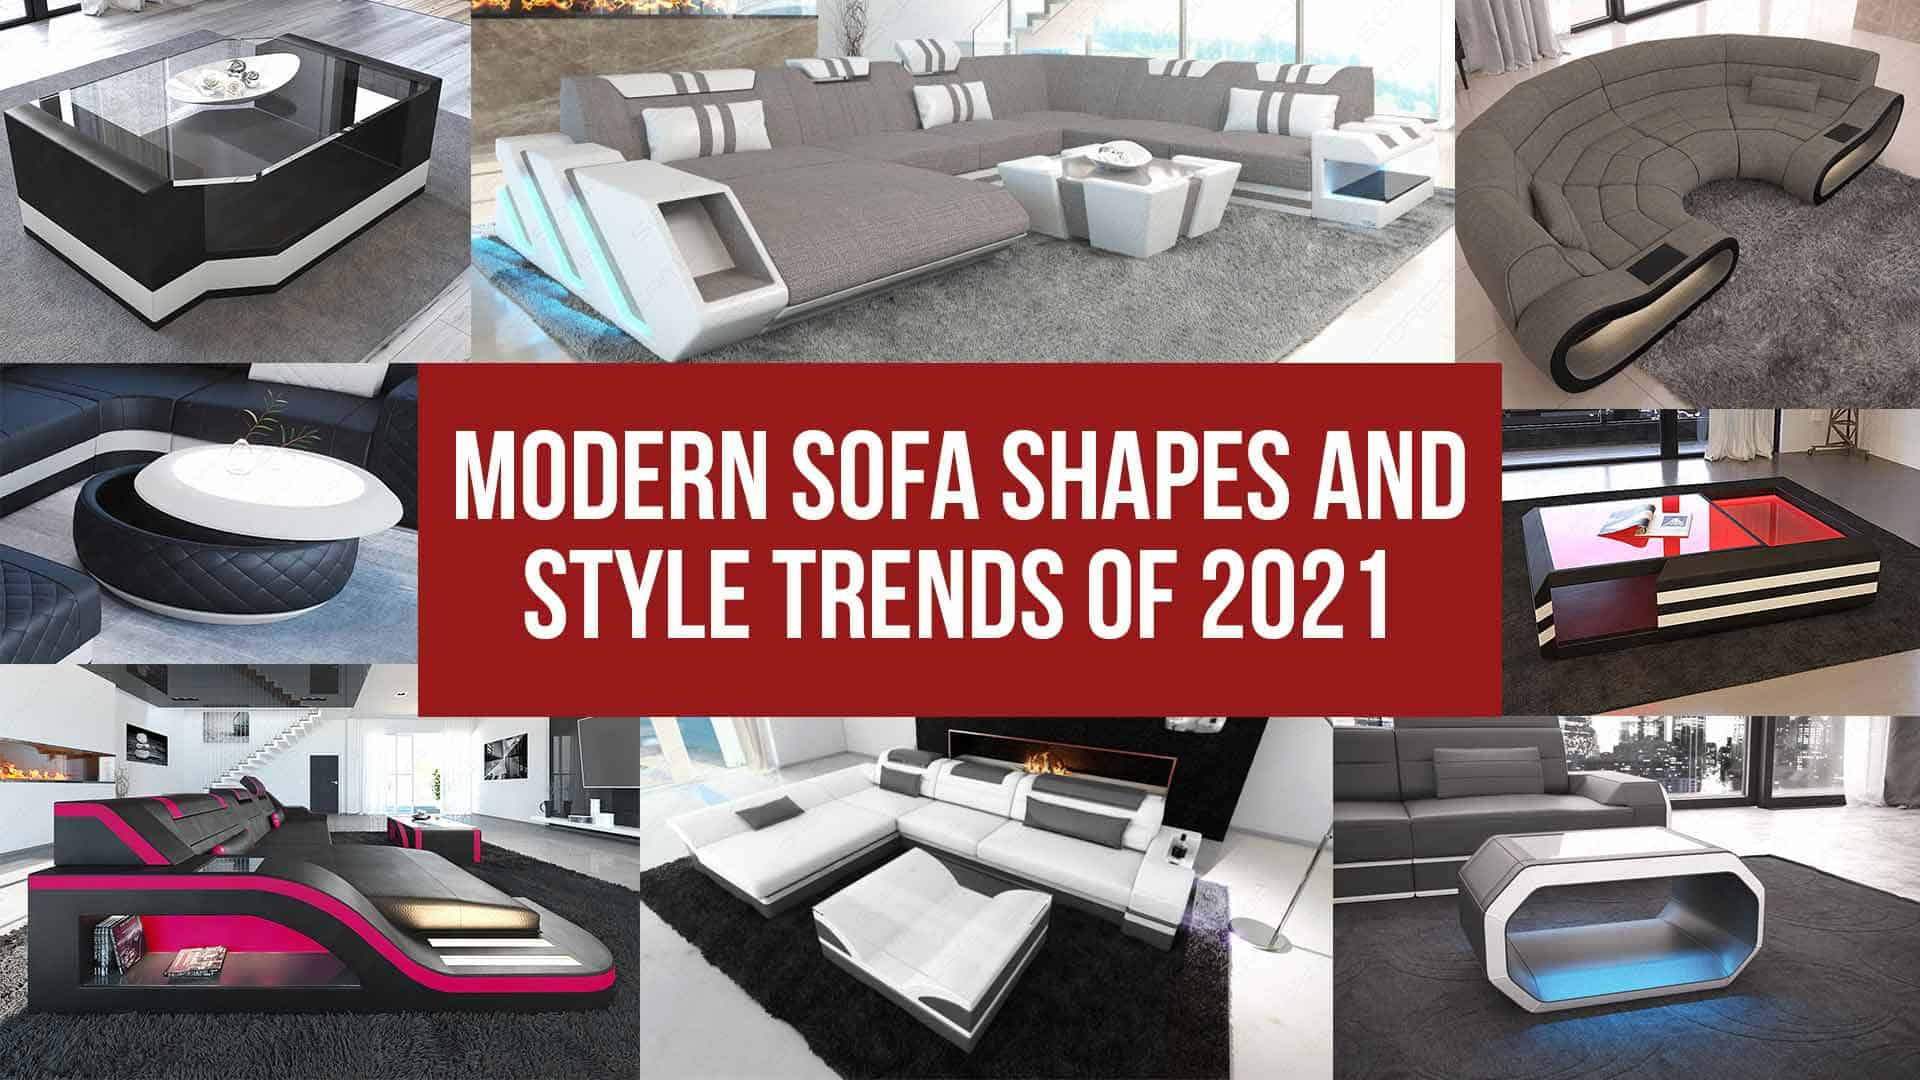 Modern Sofa Shapes and Style Trends of 2021